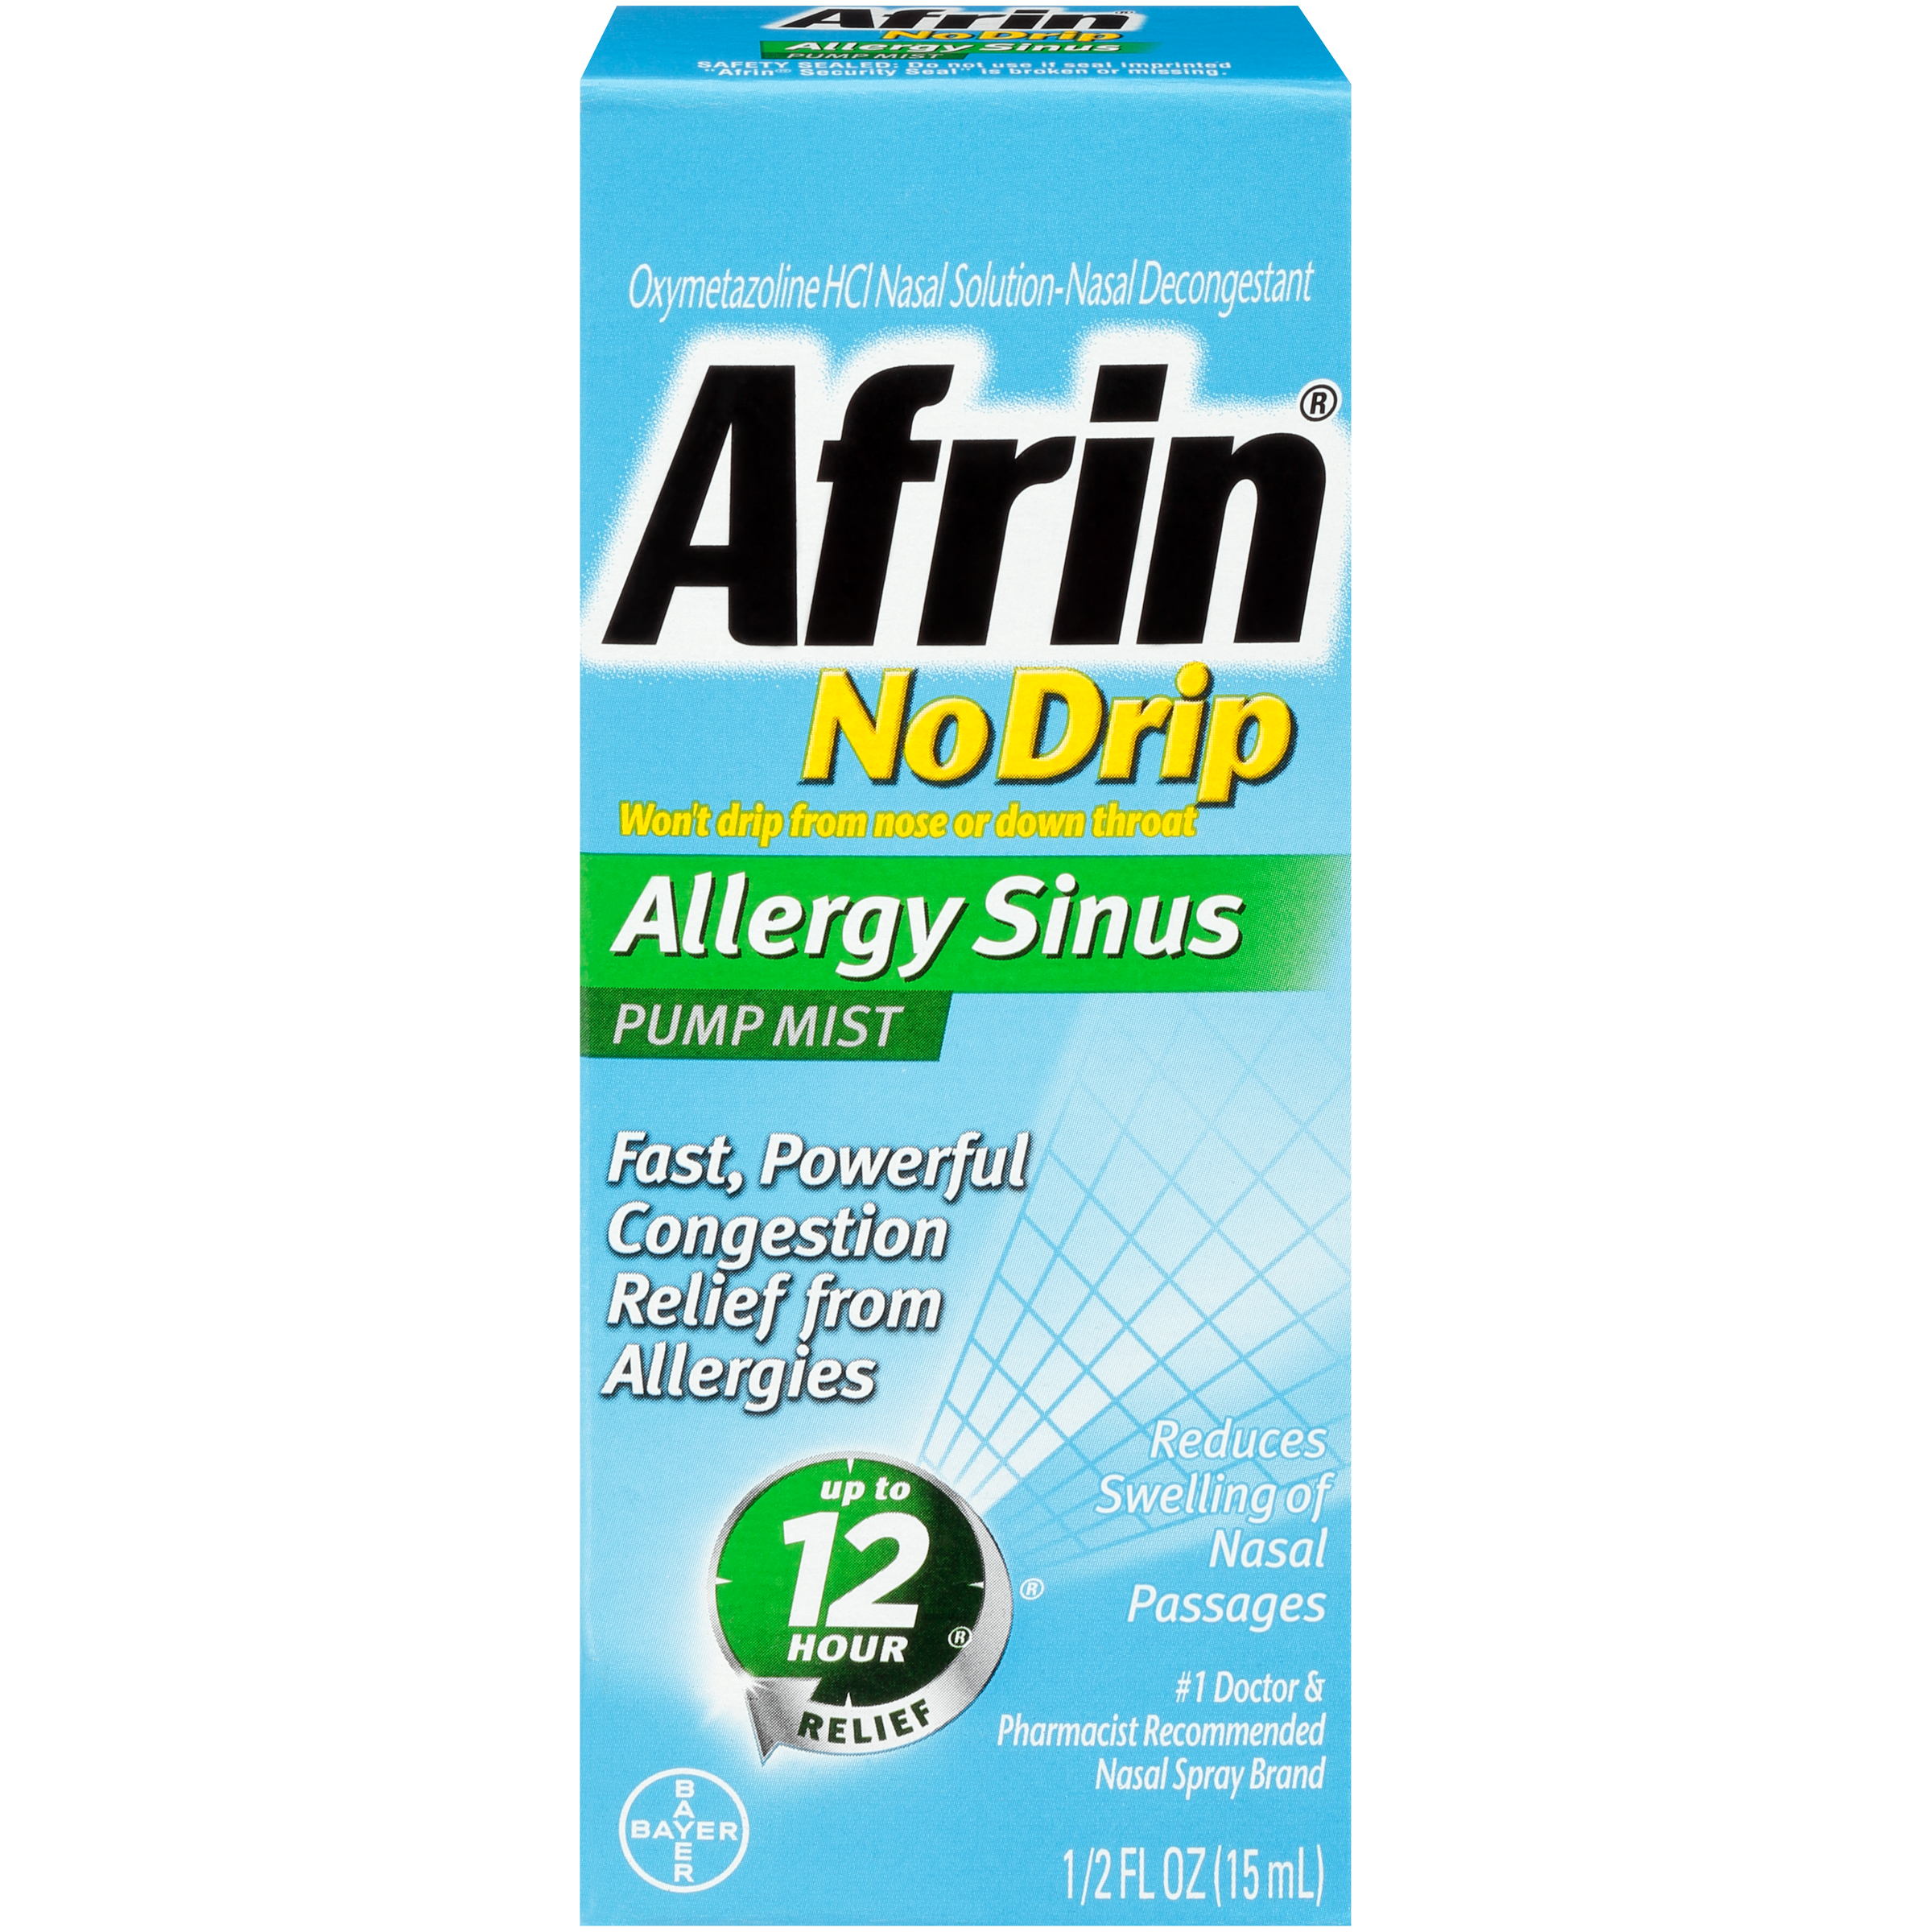 Afrin No Drip Allergy Sinus Pump Nasal Mist, Congestion Relief, 1ct